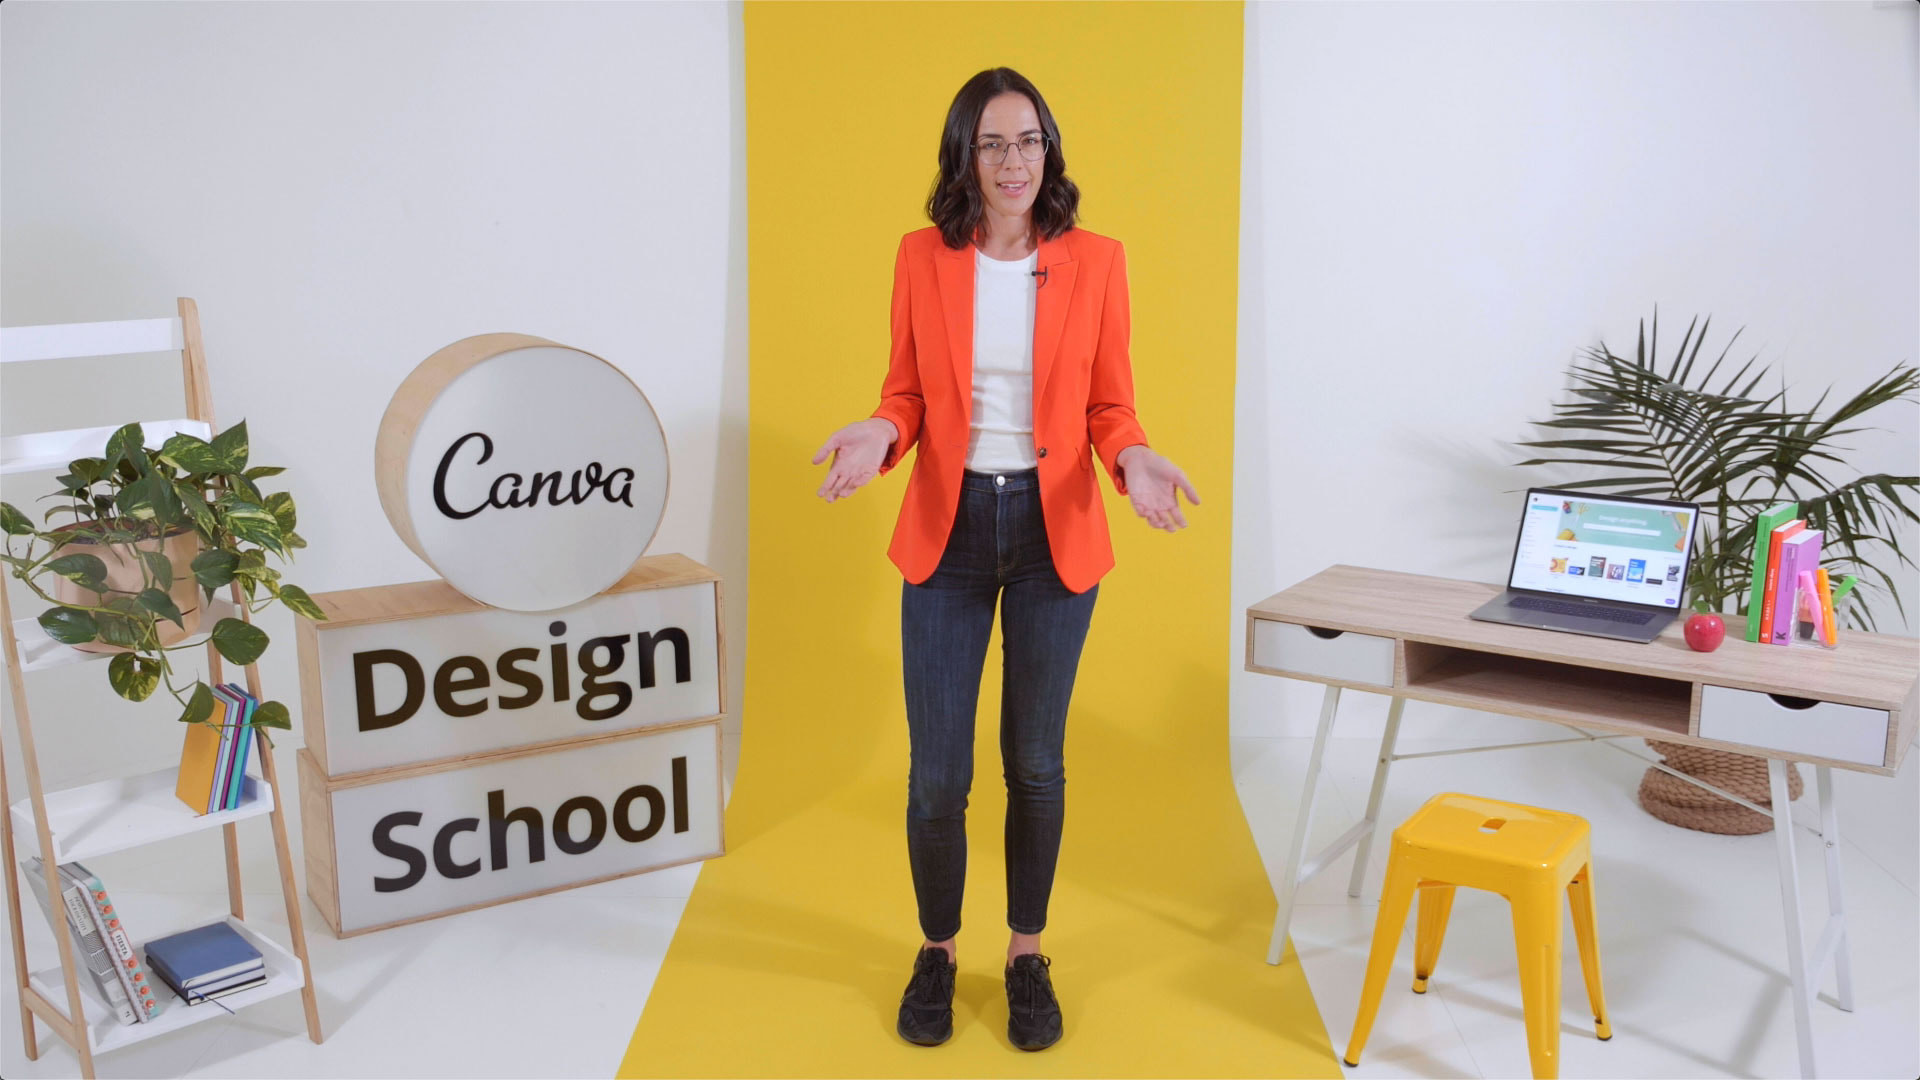 design-school-canva-in-the-classroom-build-design-literacy